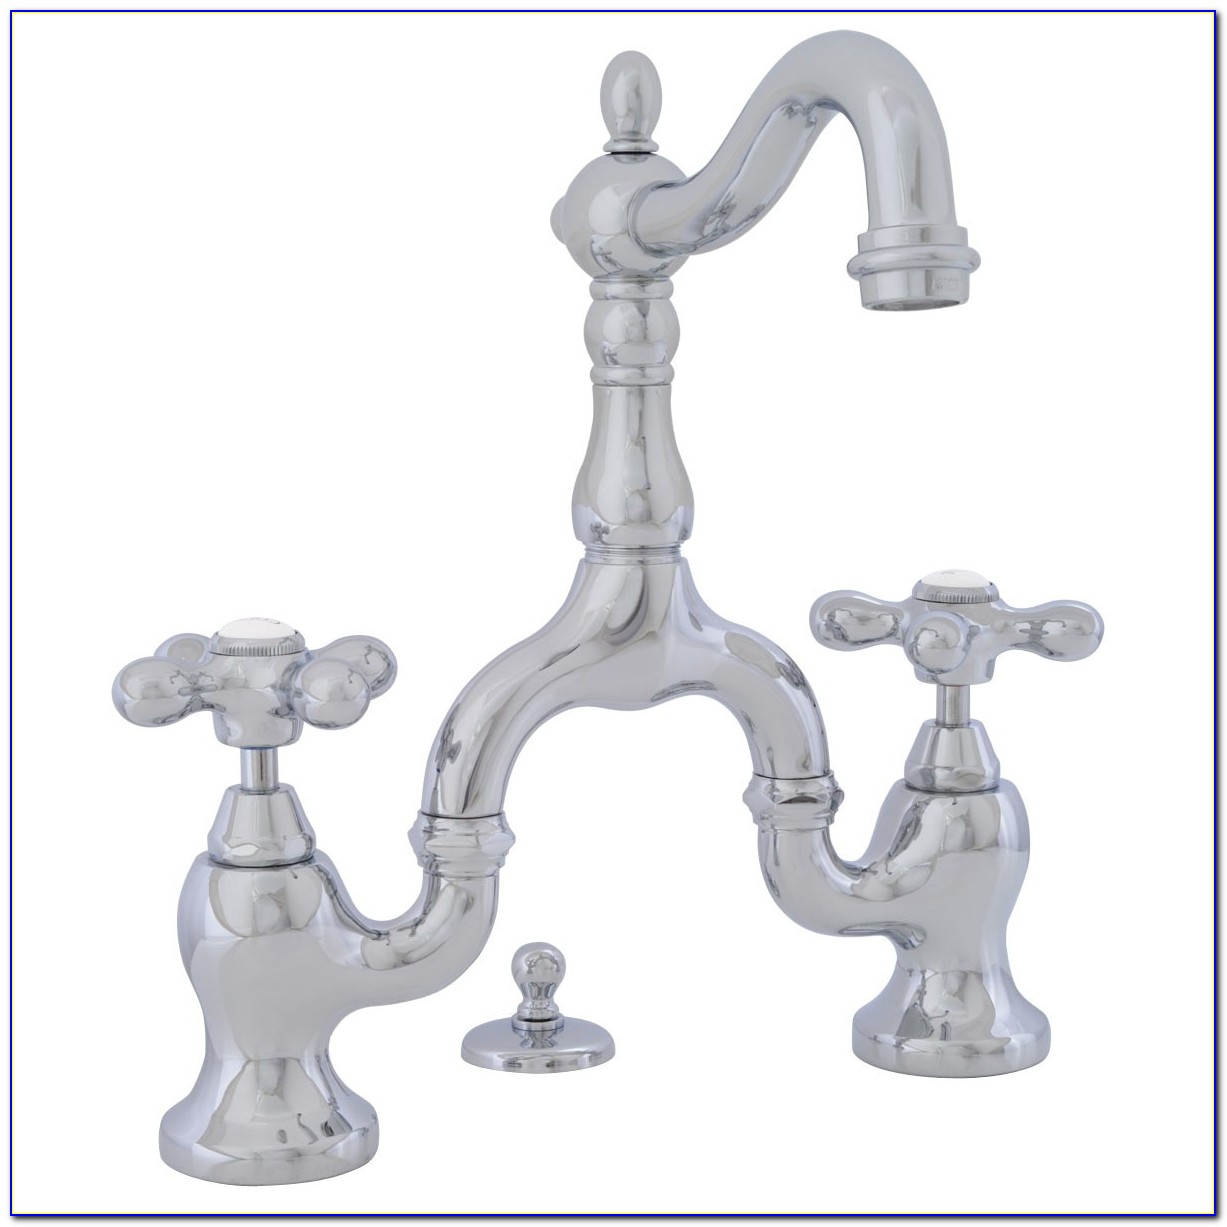 Bathroom Sink Faucets Lavatory Faucet Sink Within Proportions 1200 X 1200